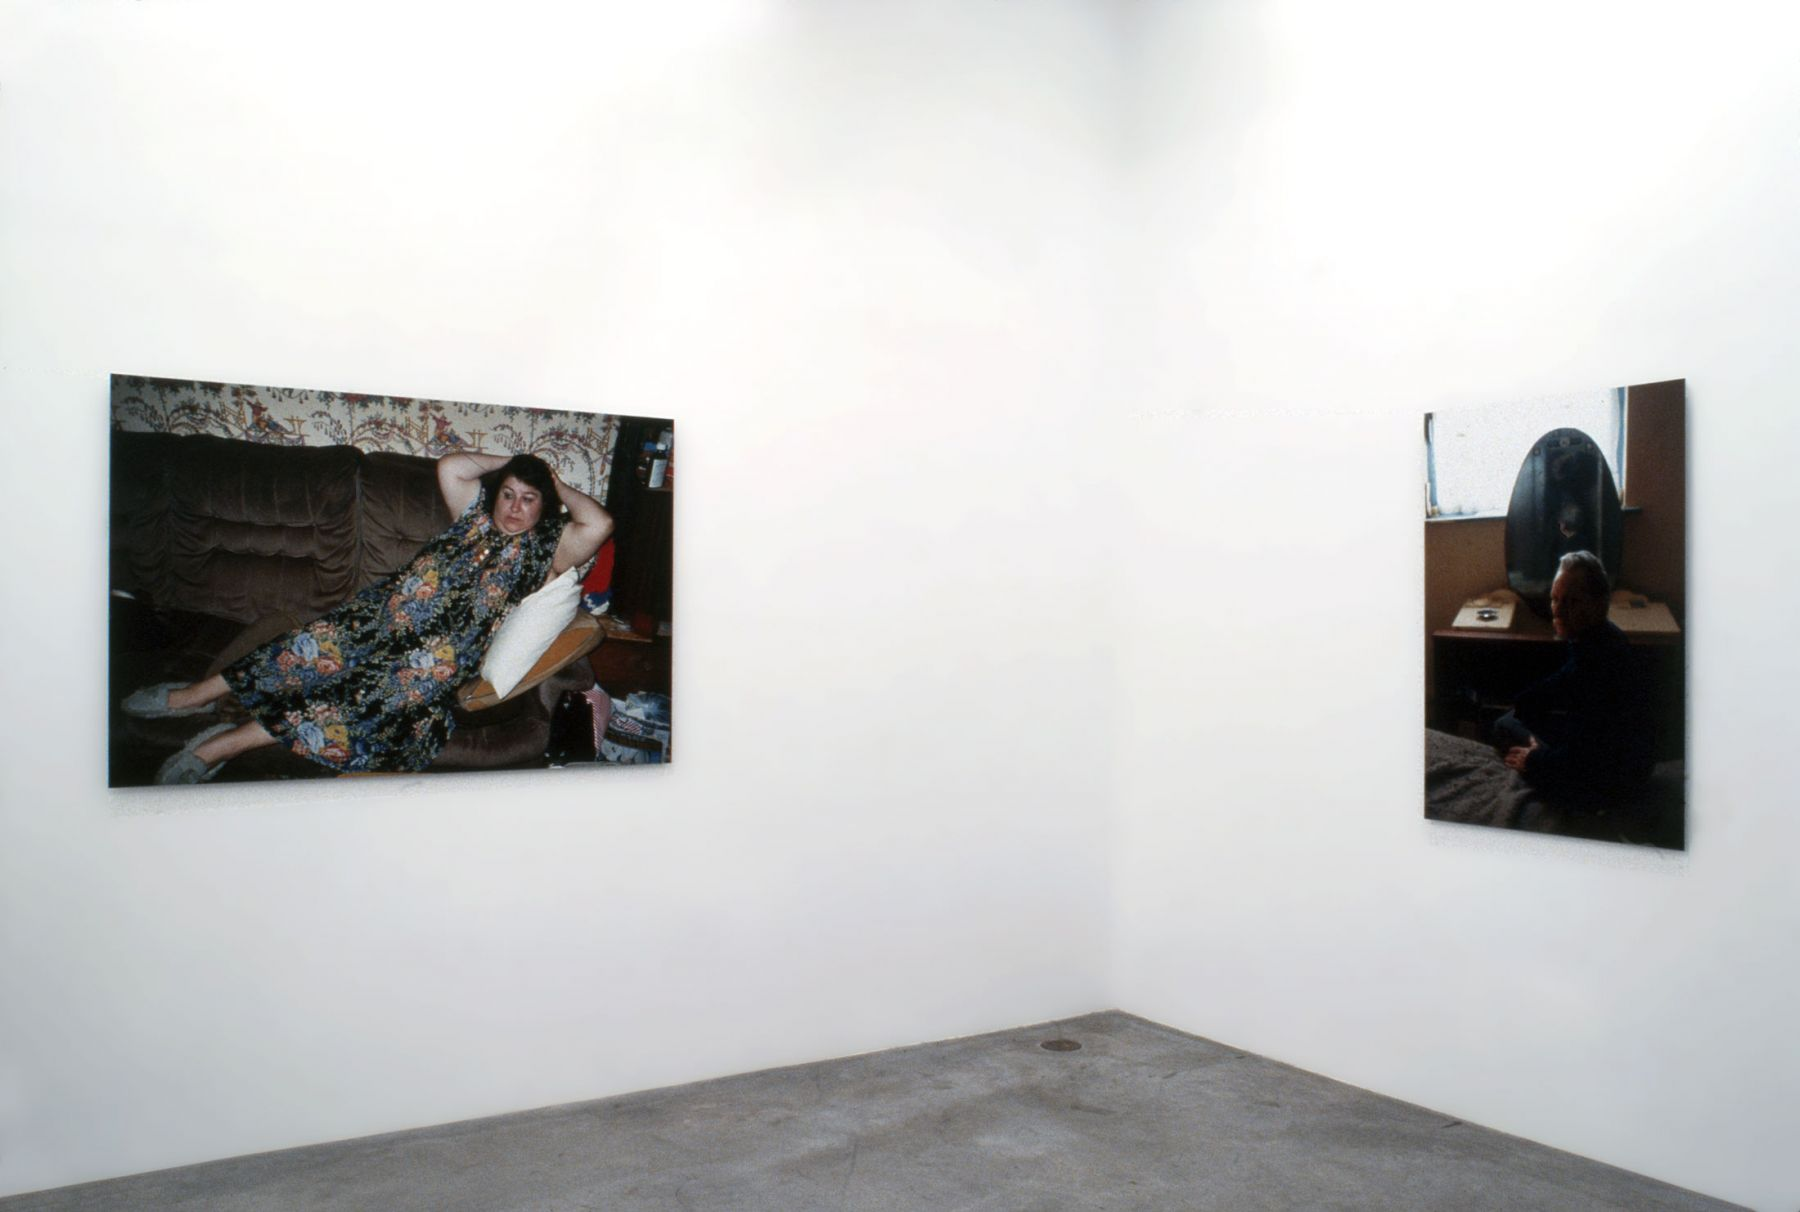 Richard Billingham, Installation view